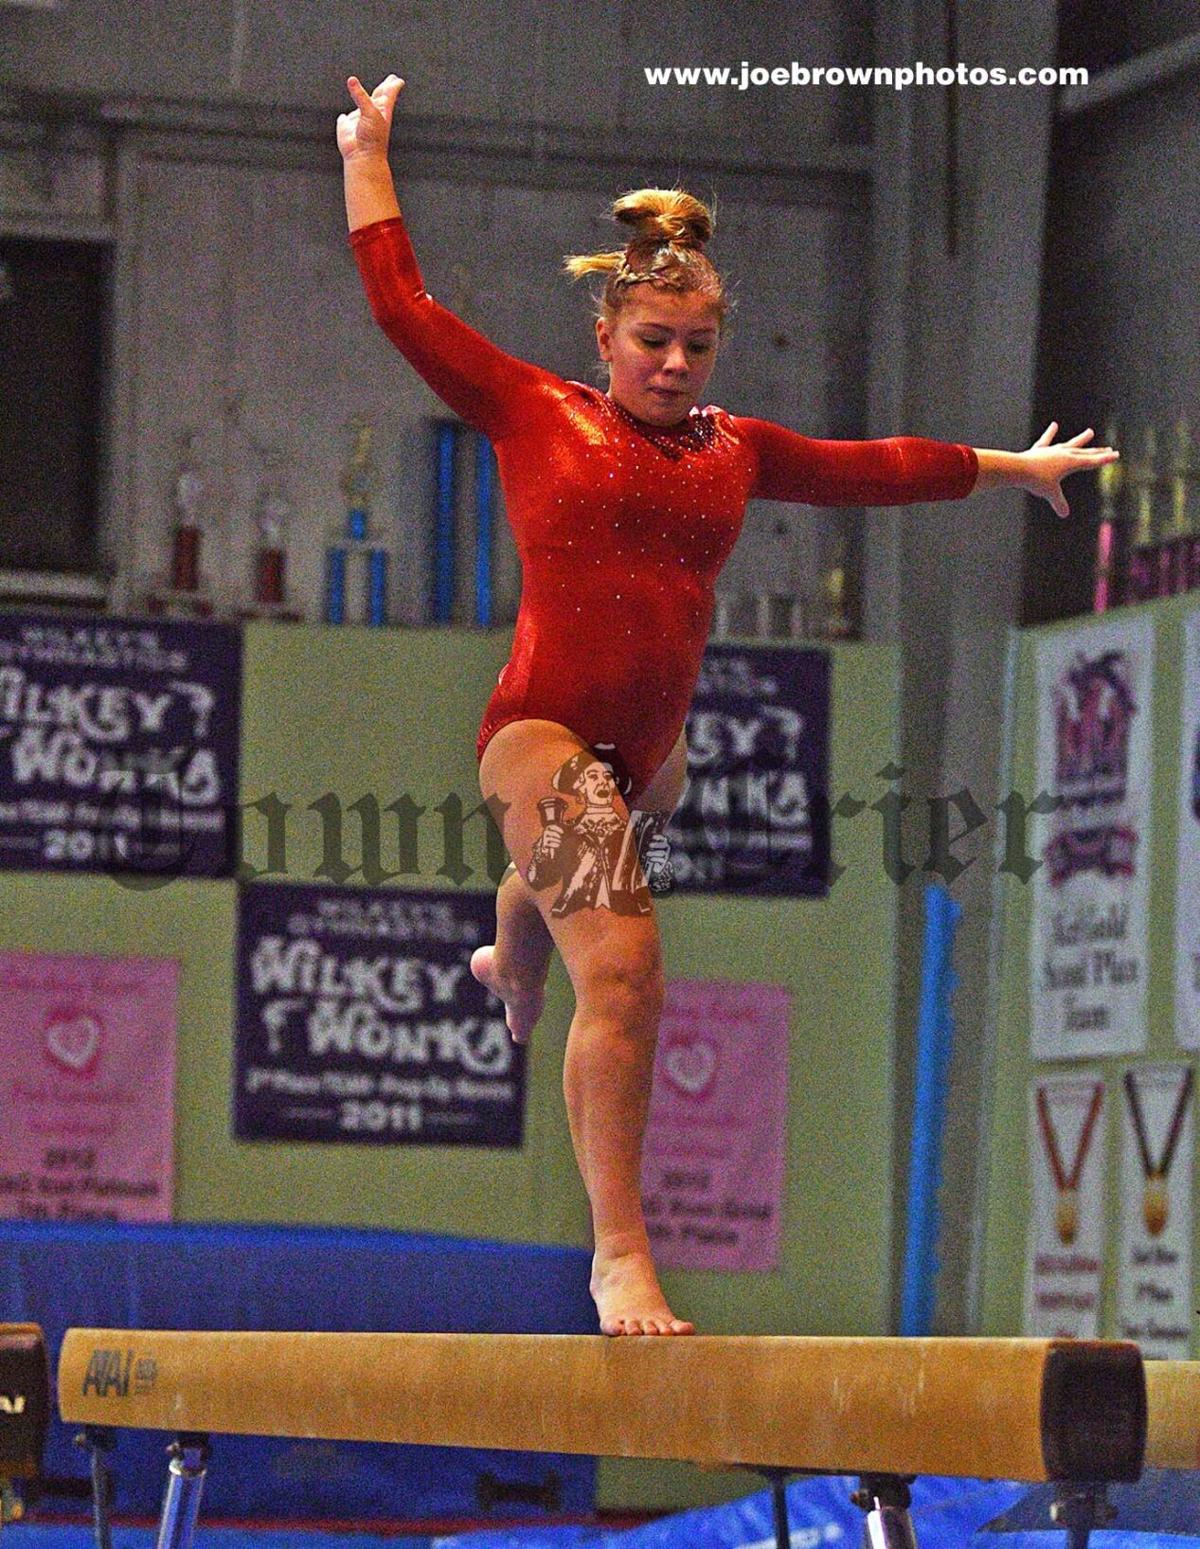 Abby McCarthy works on her routine on the balance beam